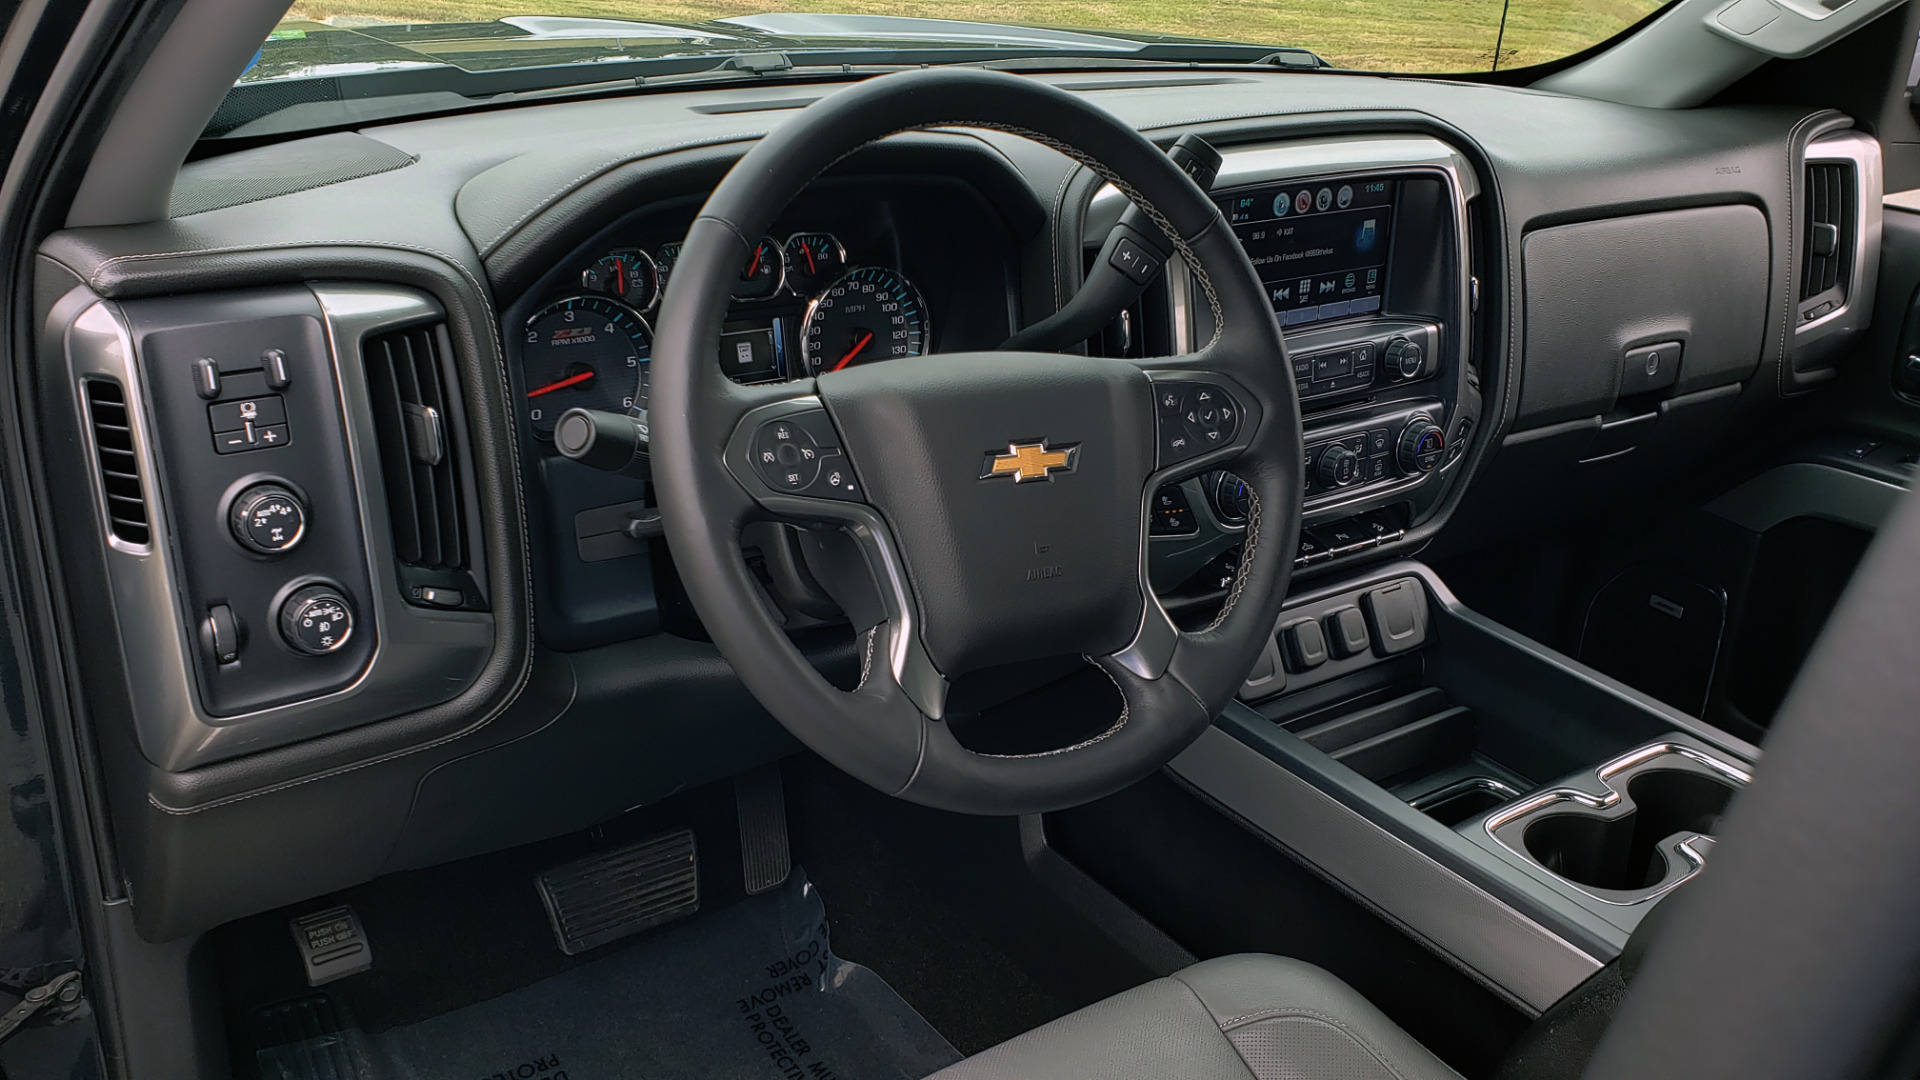 Used 2017 Chevrolet SILVERADO 1500 LTZ 4WD / NAV / BOSE / LEATHER / CAMERA / LOADED for sale Sold at Formula Imports in Charlotte NC 28227 51